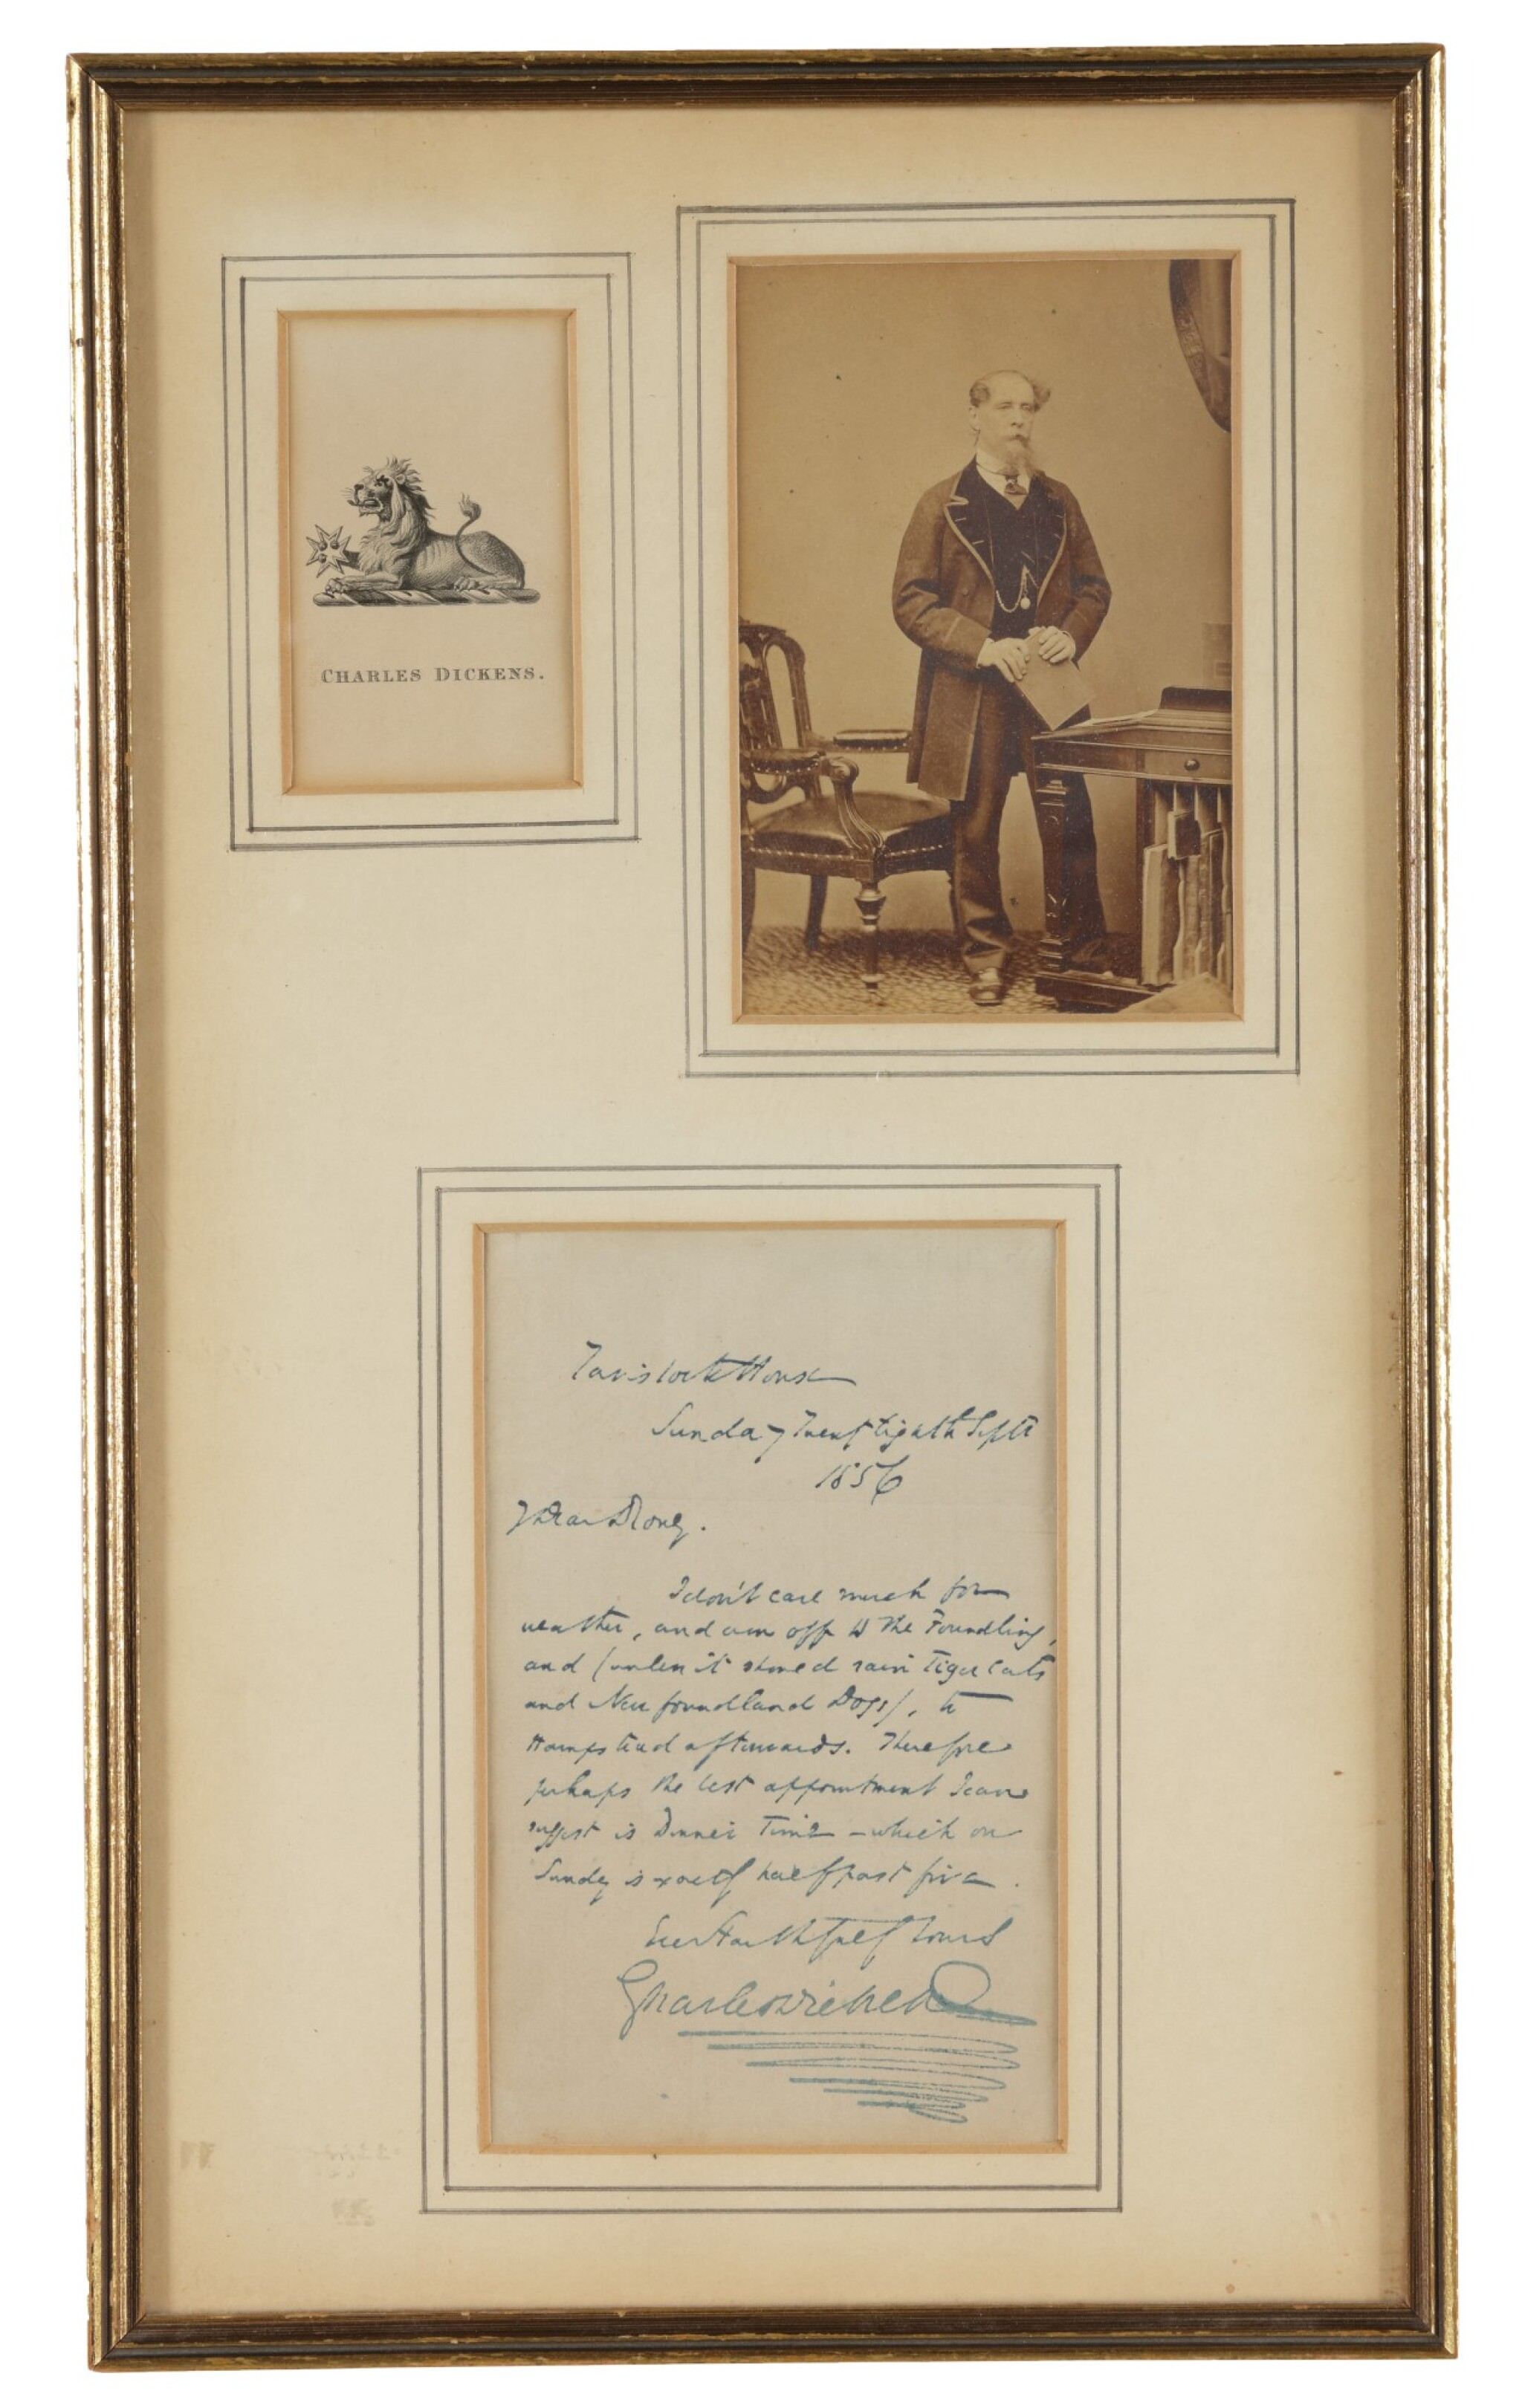 """View full screen - View 1 of Lot 137. DICKENS, CHARLES    Autograph letter signed (""""Charles Dickens""""), to George Dolby, in which he rather whimsically writes about inclement weather, with bookplate and carte-de-visite ."""